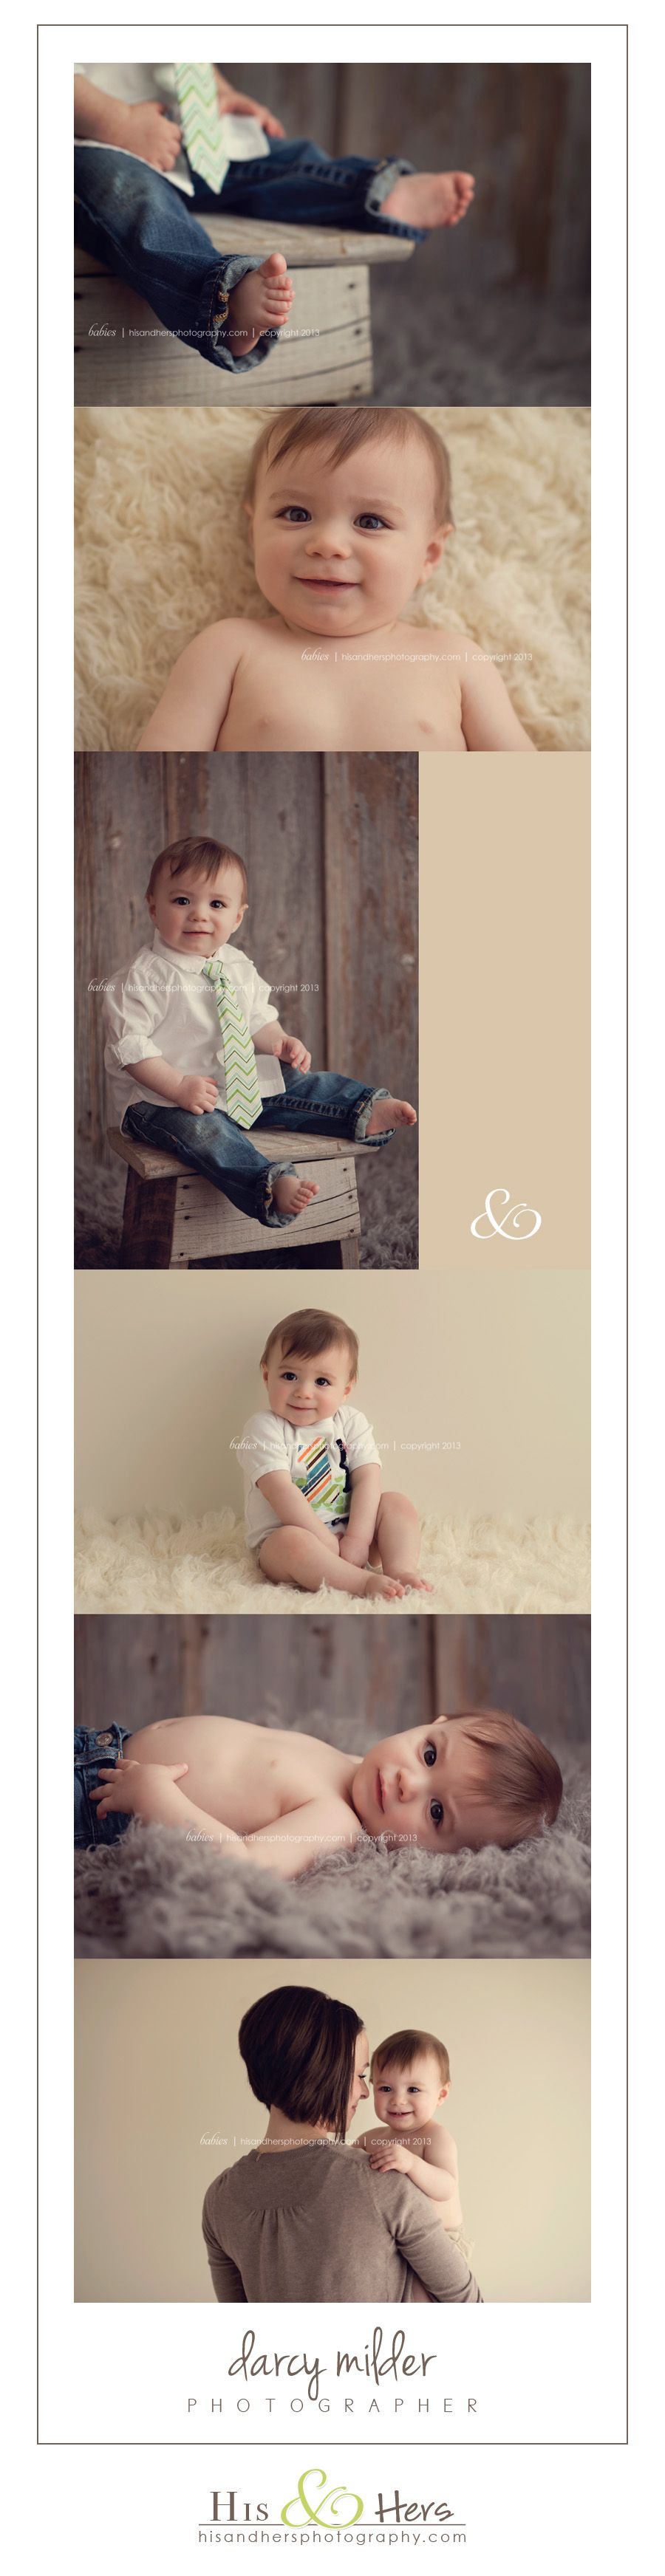 12 month old 1  year old portraits baby pictures des moines iowa